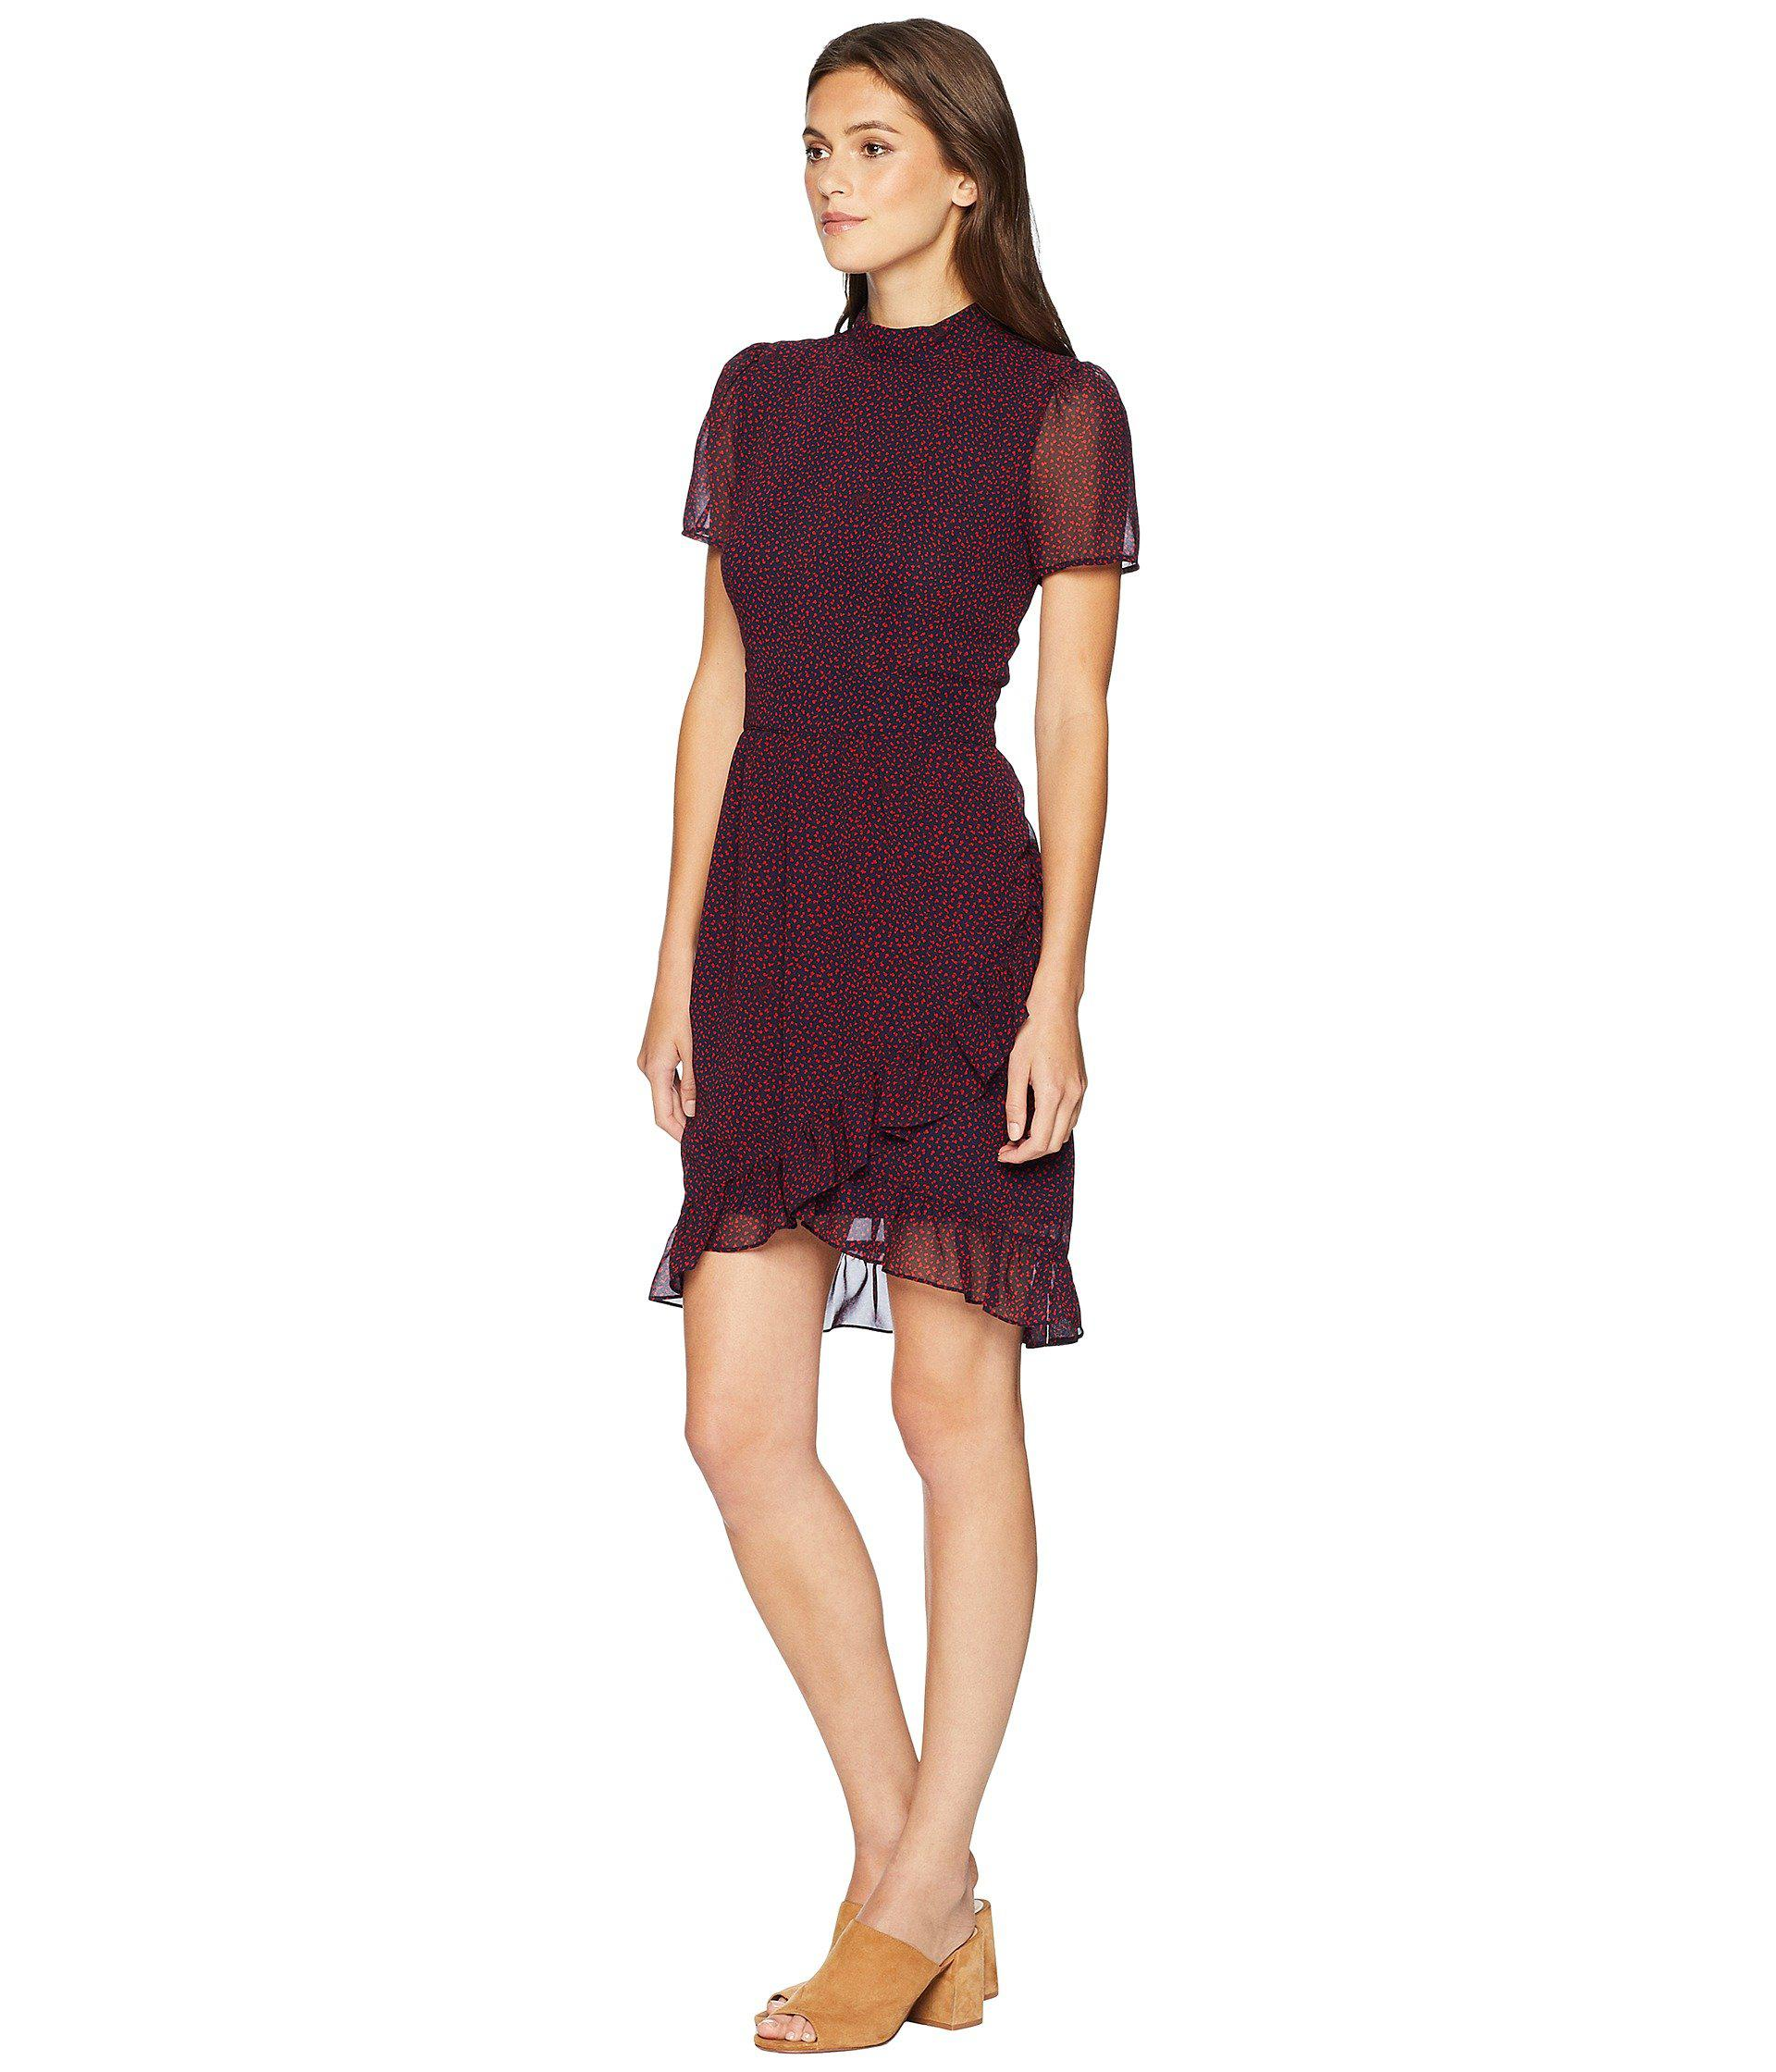 dca1d291140b Lyst - Juicy Couture Ditsy Floral Flirty Dress in Purple